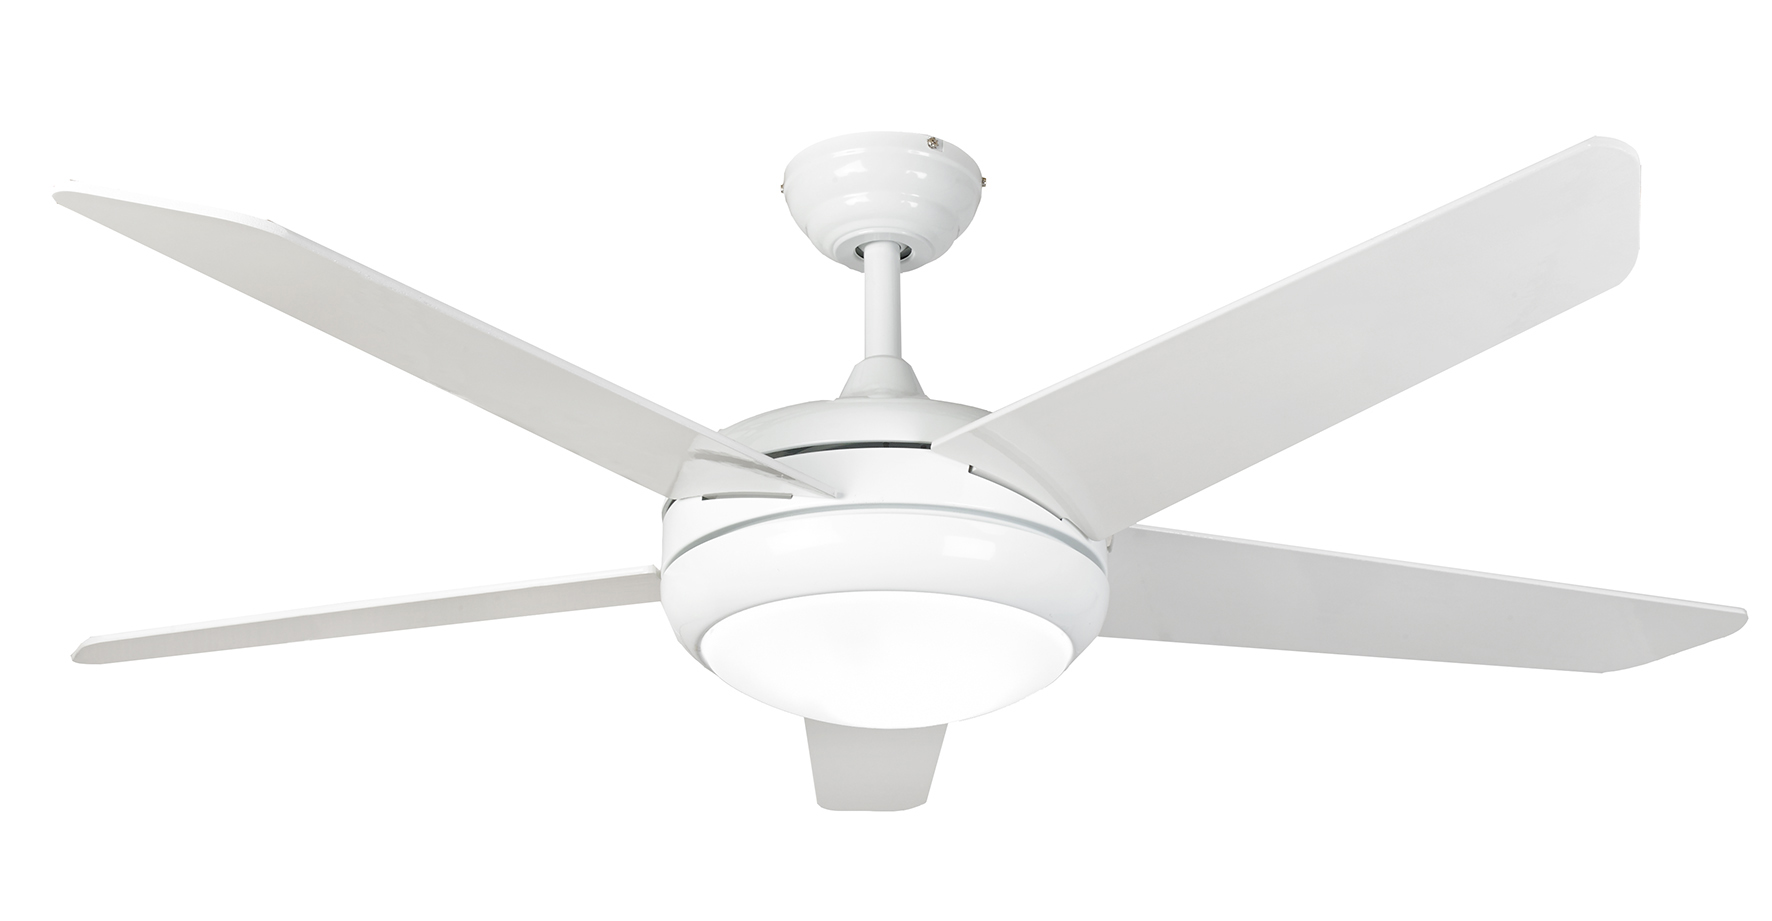 eurofans neptune 54 white ceiling fan remote control led light 115847. Black Bedroom Furniture Sets. Home Design Ideas